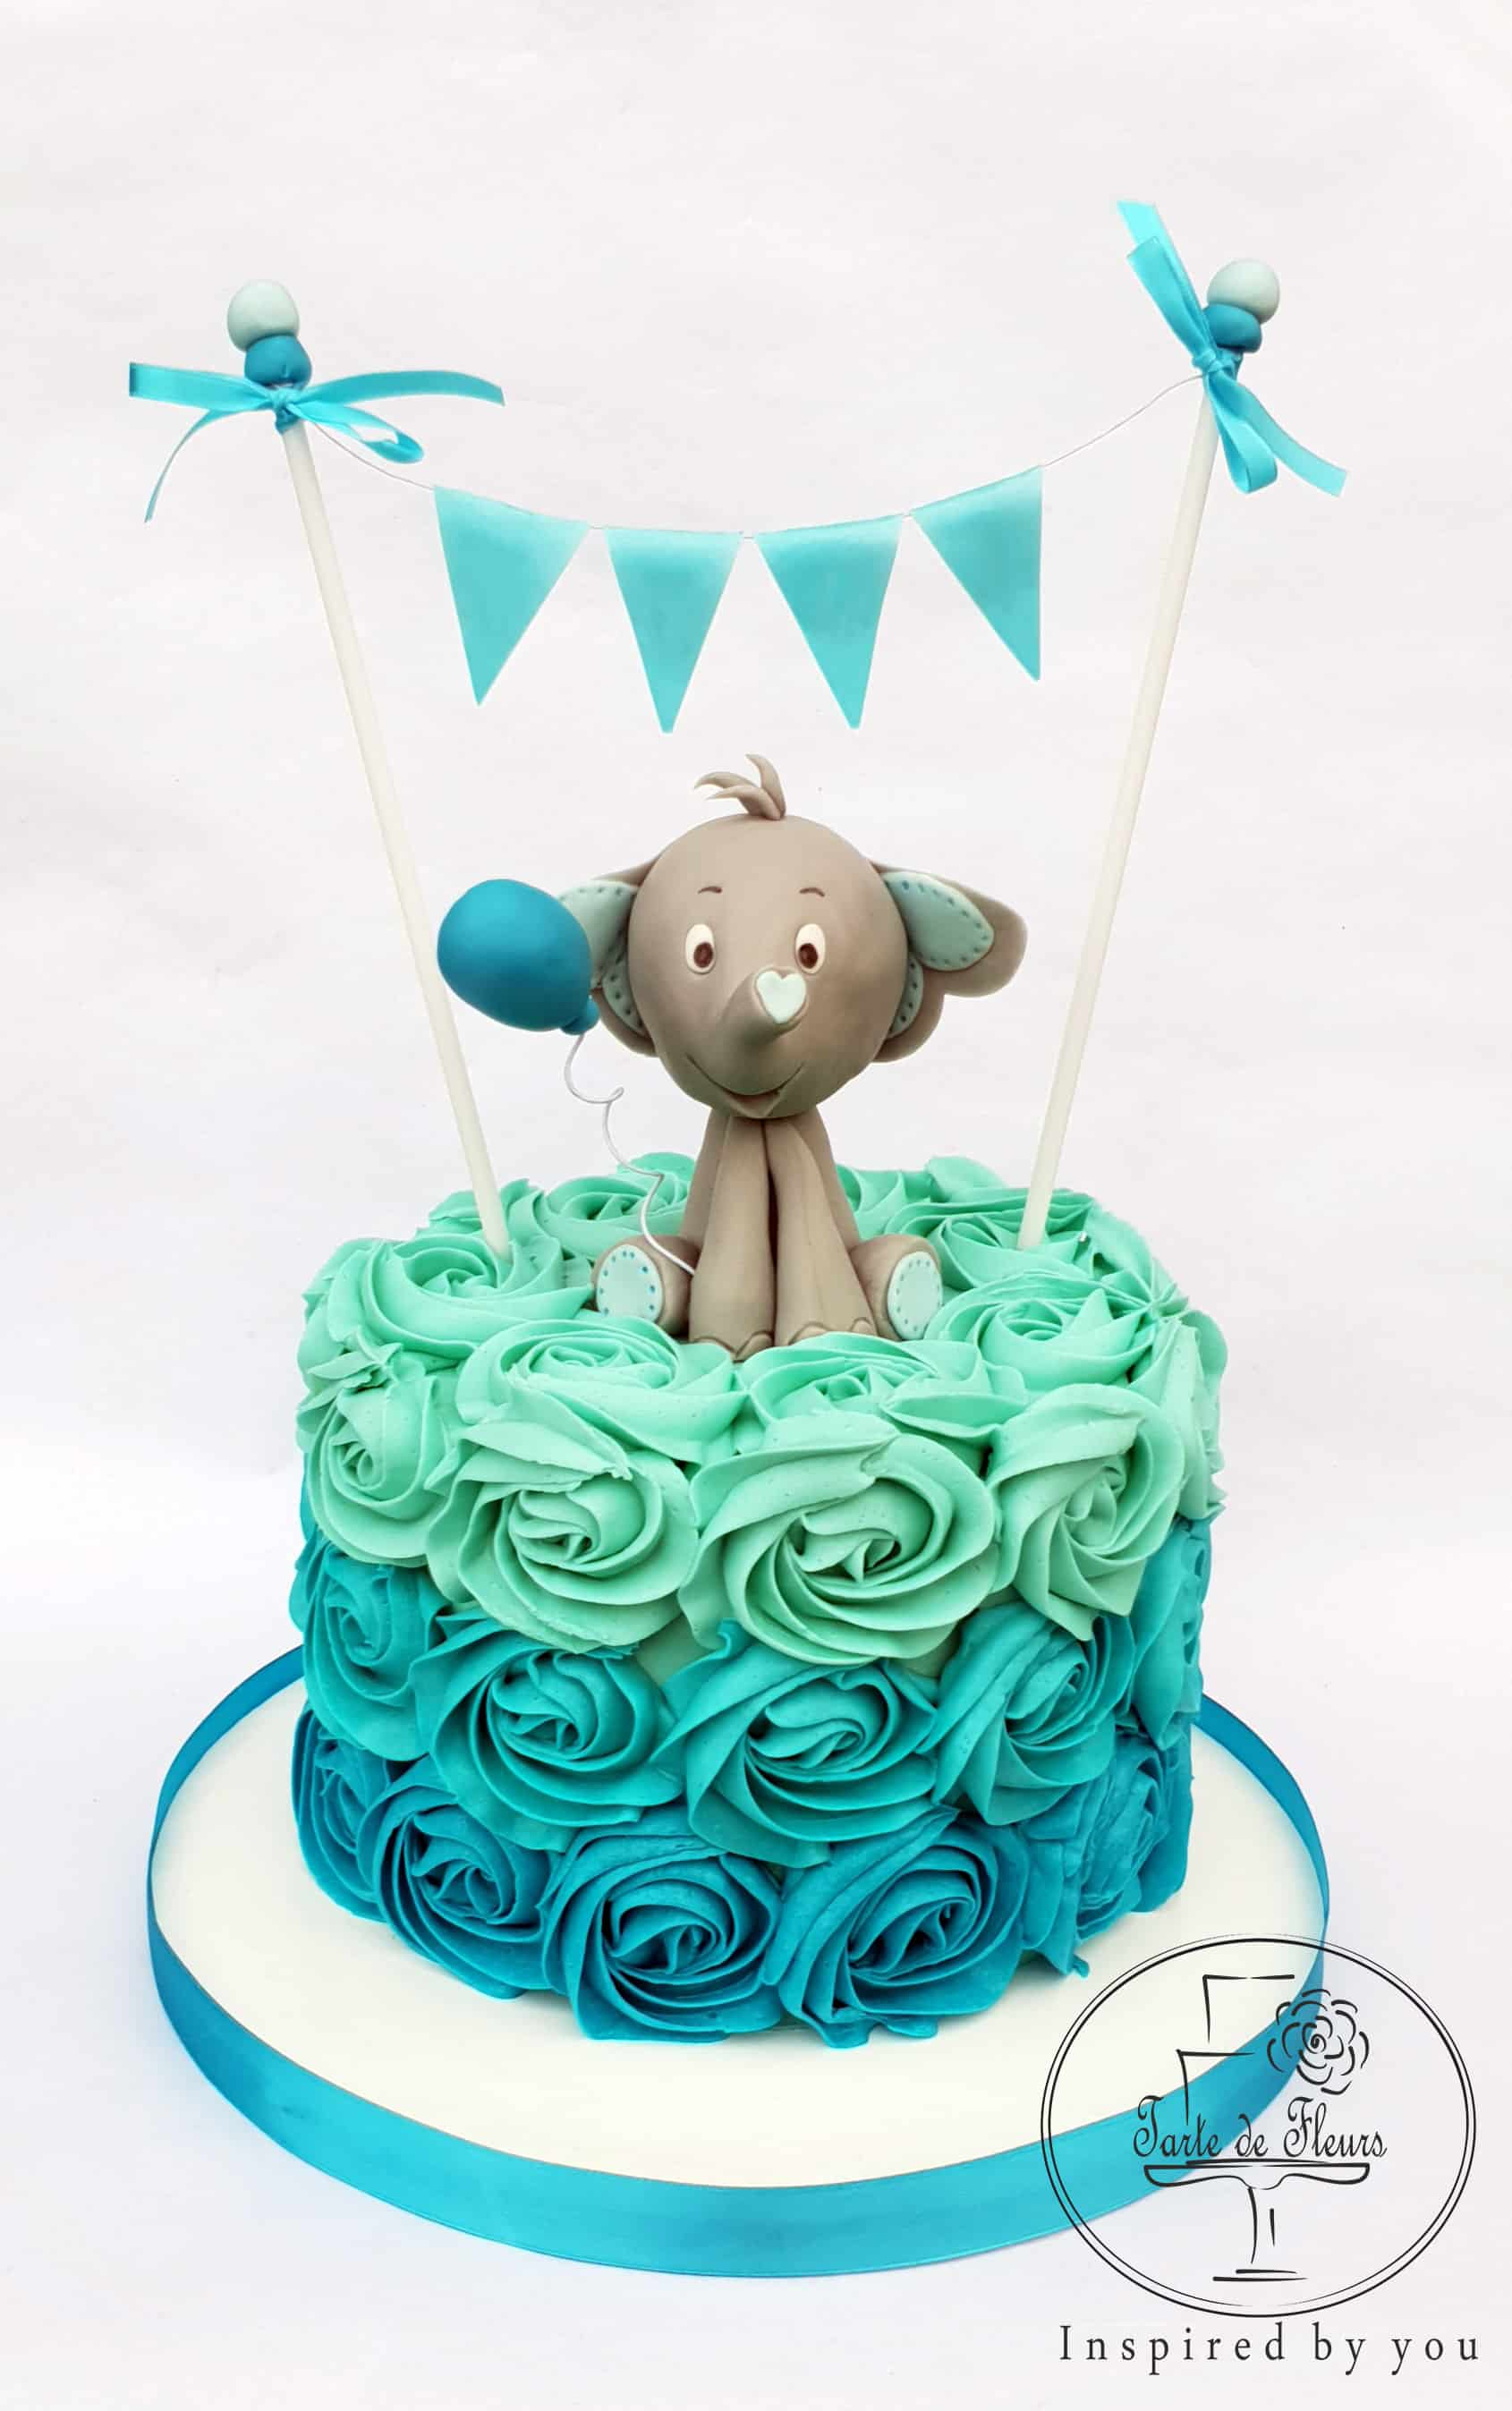 Admirable First Birthday Cake For Boys Order Online Tarte De Fleurs Essex Personalised Birthday Cards Veneteletsinfo